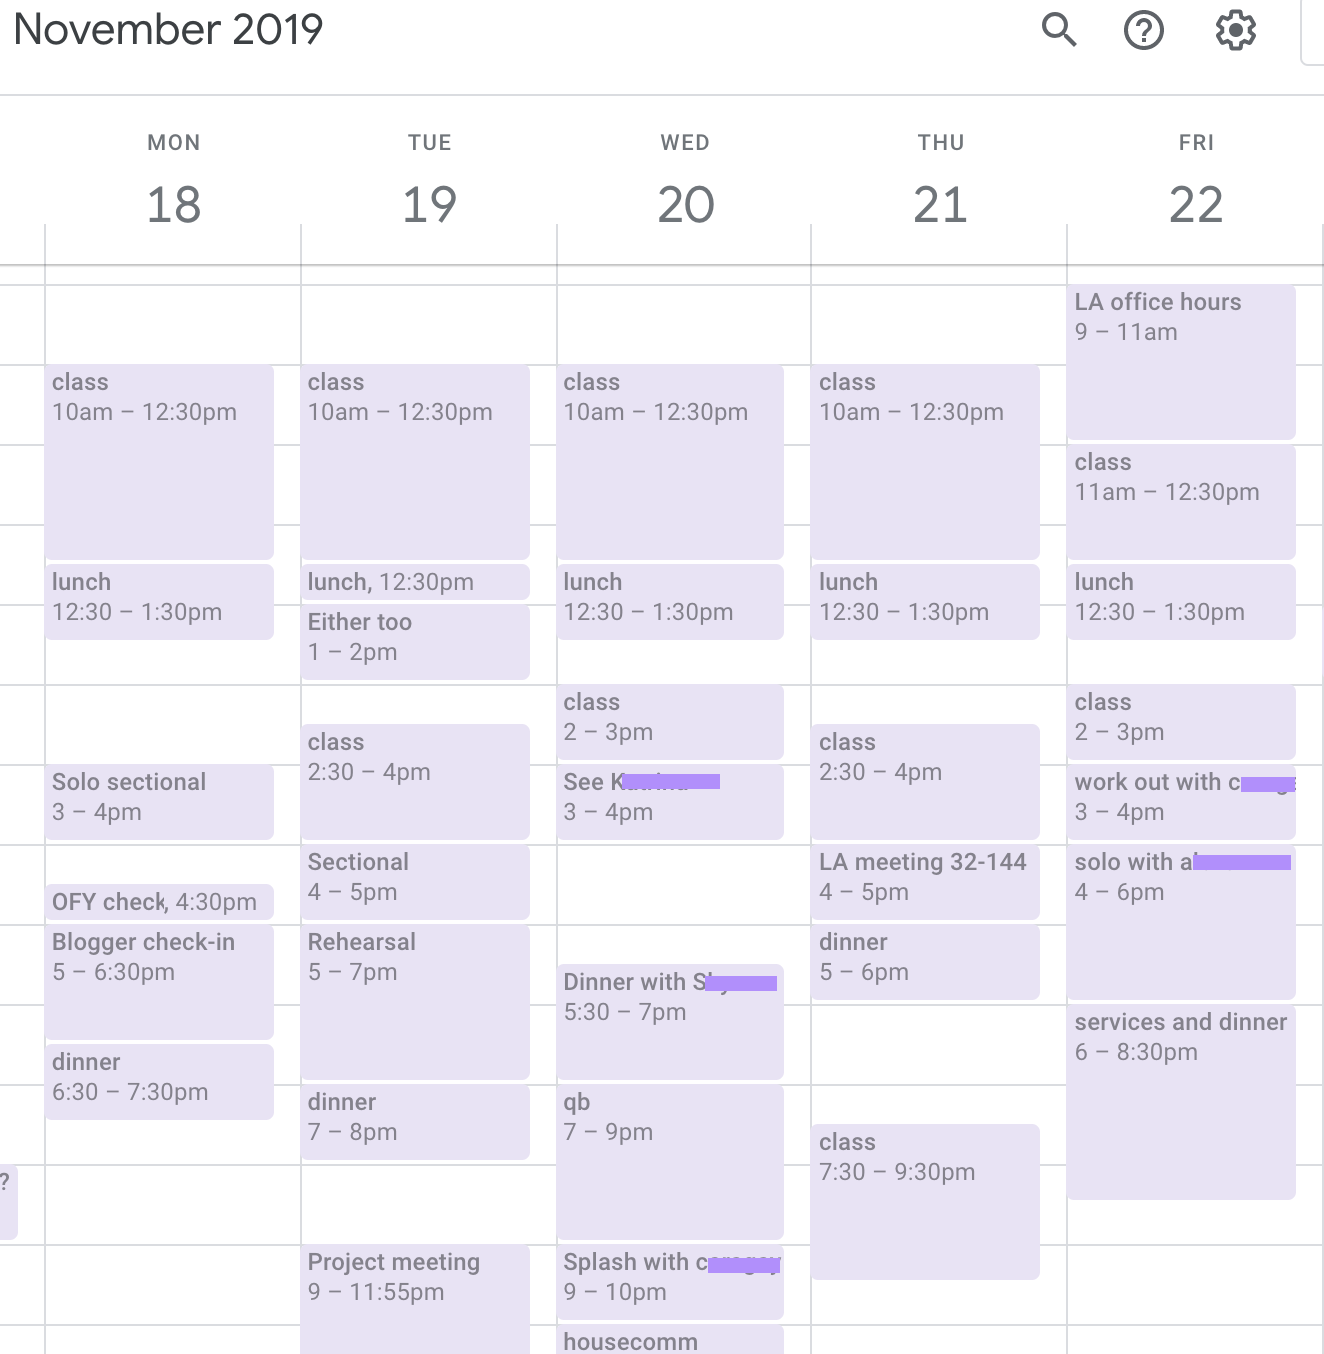 A picture of my schedule one week in November. There are many things scheduled each day and very little empty space.